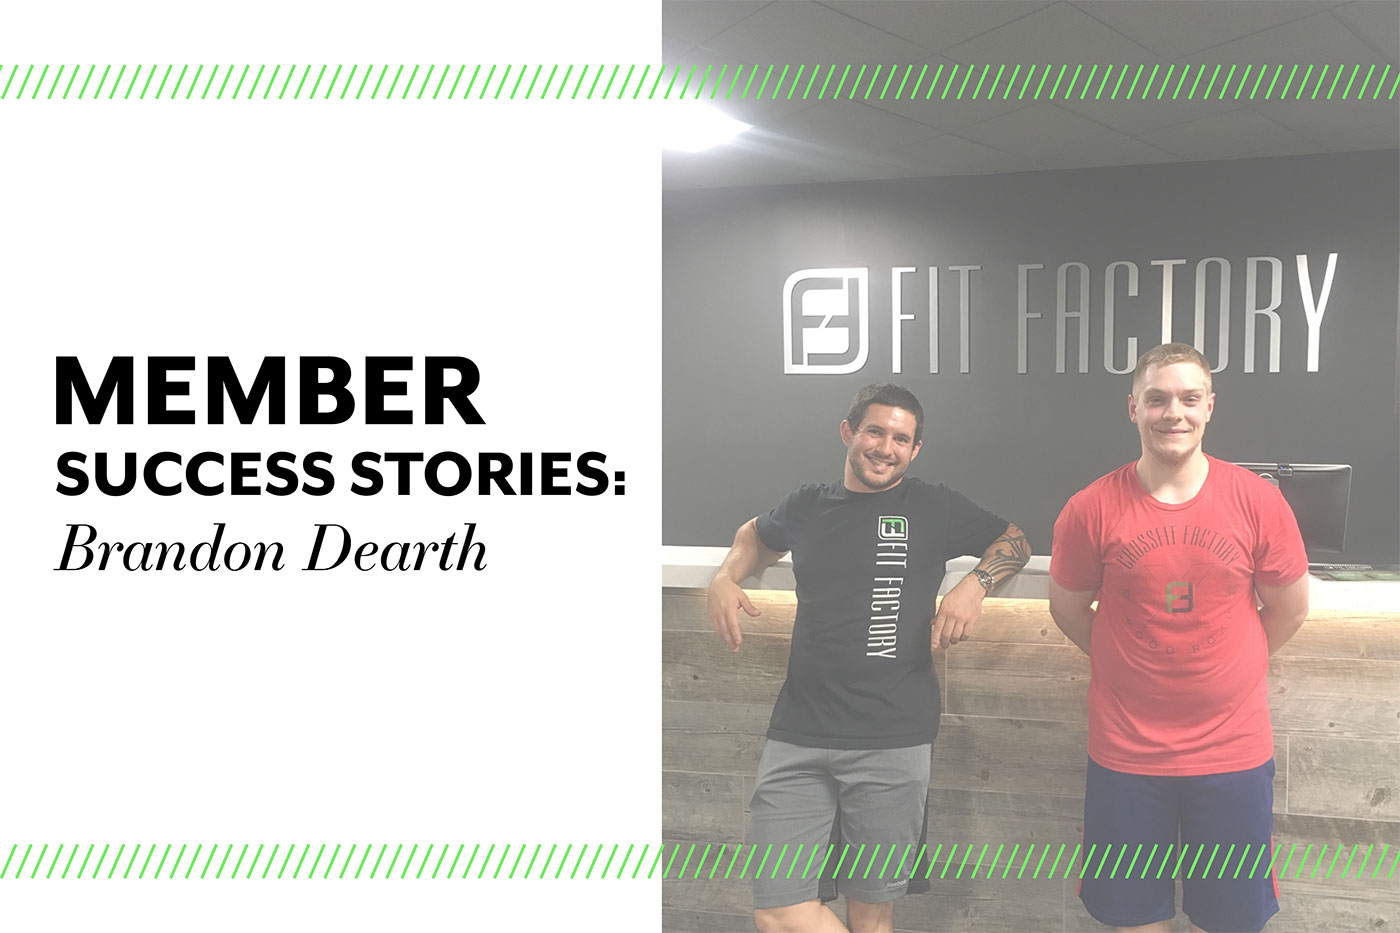 Member Success Story: Brandon Dearth